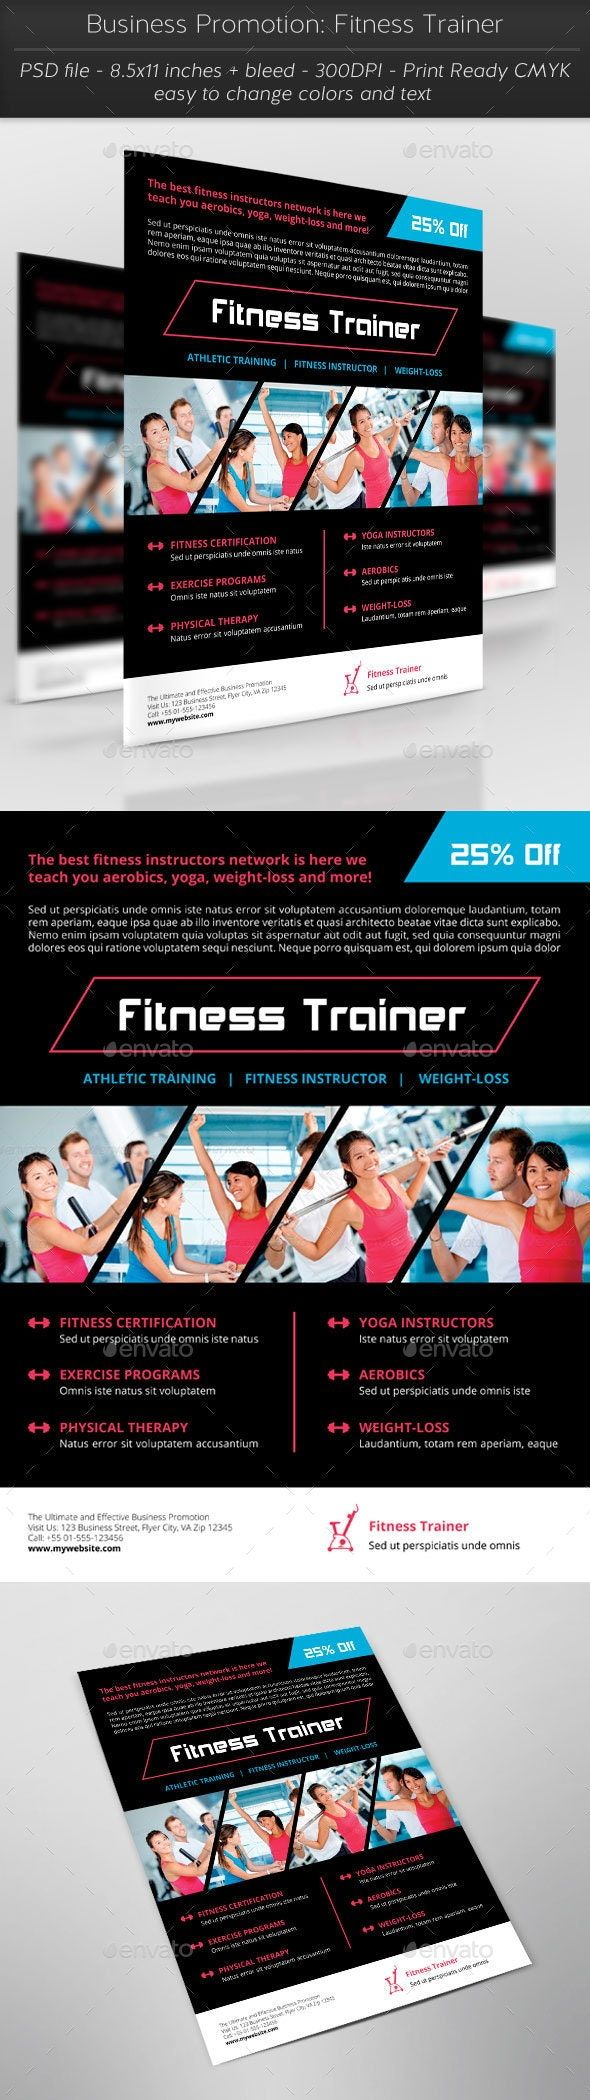 Business Promotion: Fitness Trainer #AD #Promotion, #sponsored, #Business, #Trainer, #Fitness